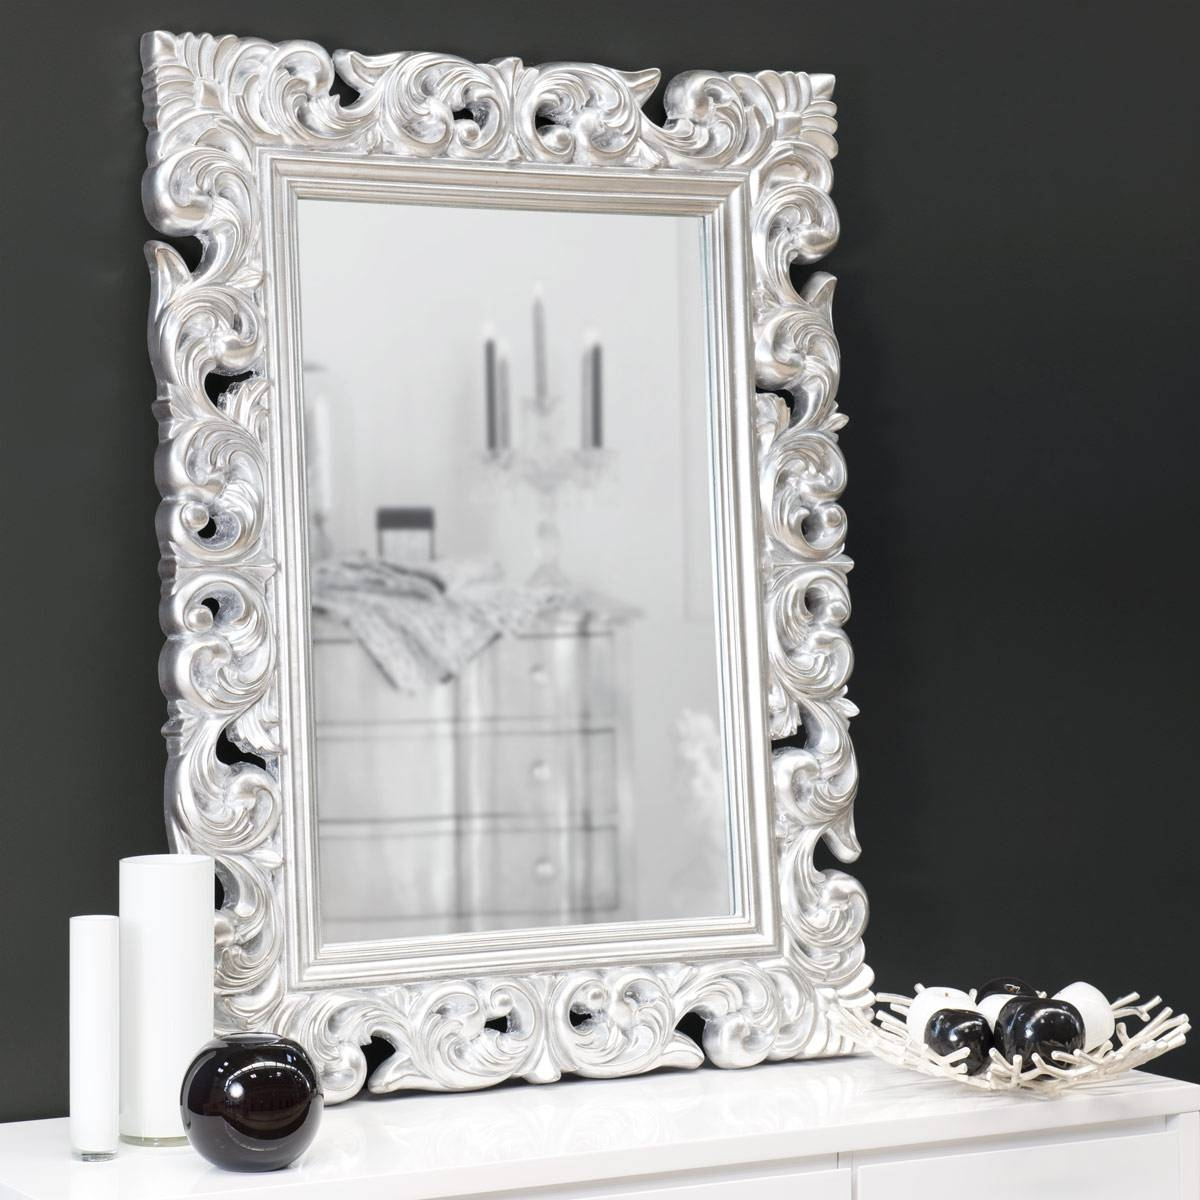 Top 15 Decorative Mirror Designs | Mostbeautifulthings inside White Decorative Mirrors (Image 22 of 25)